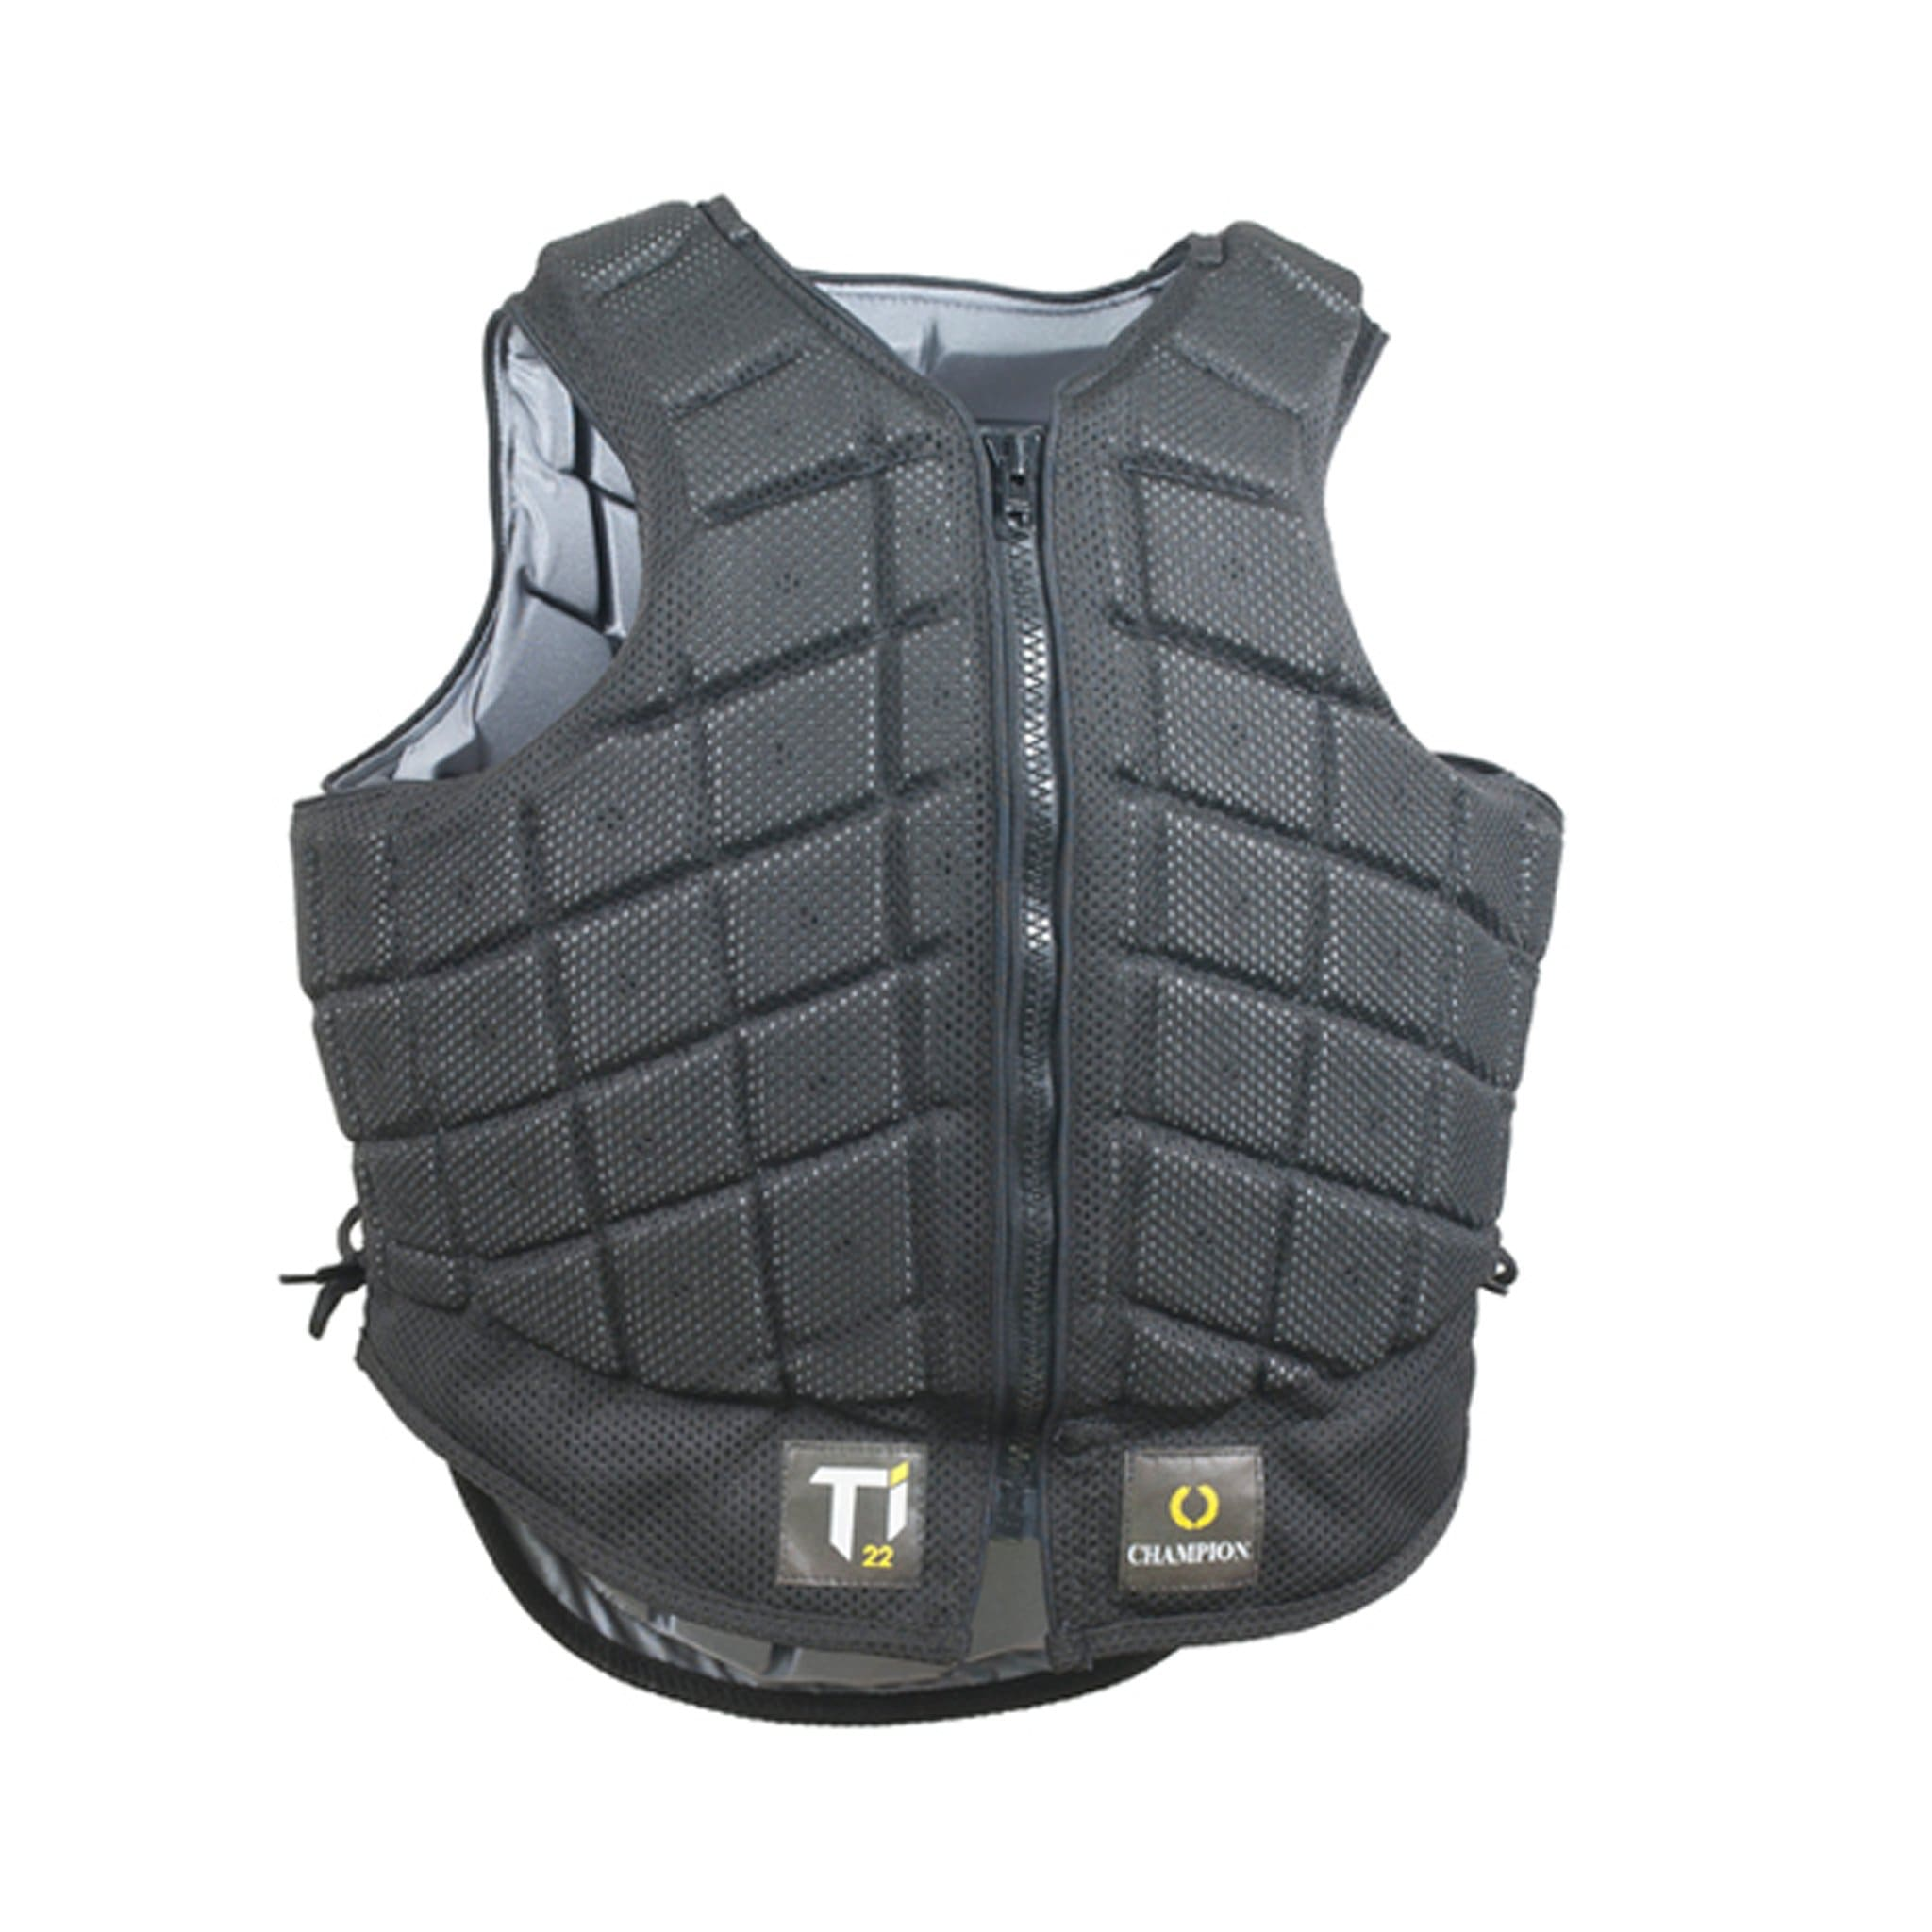 Champion Titanium Ti22 Children's Body Protector Black TI22 front